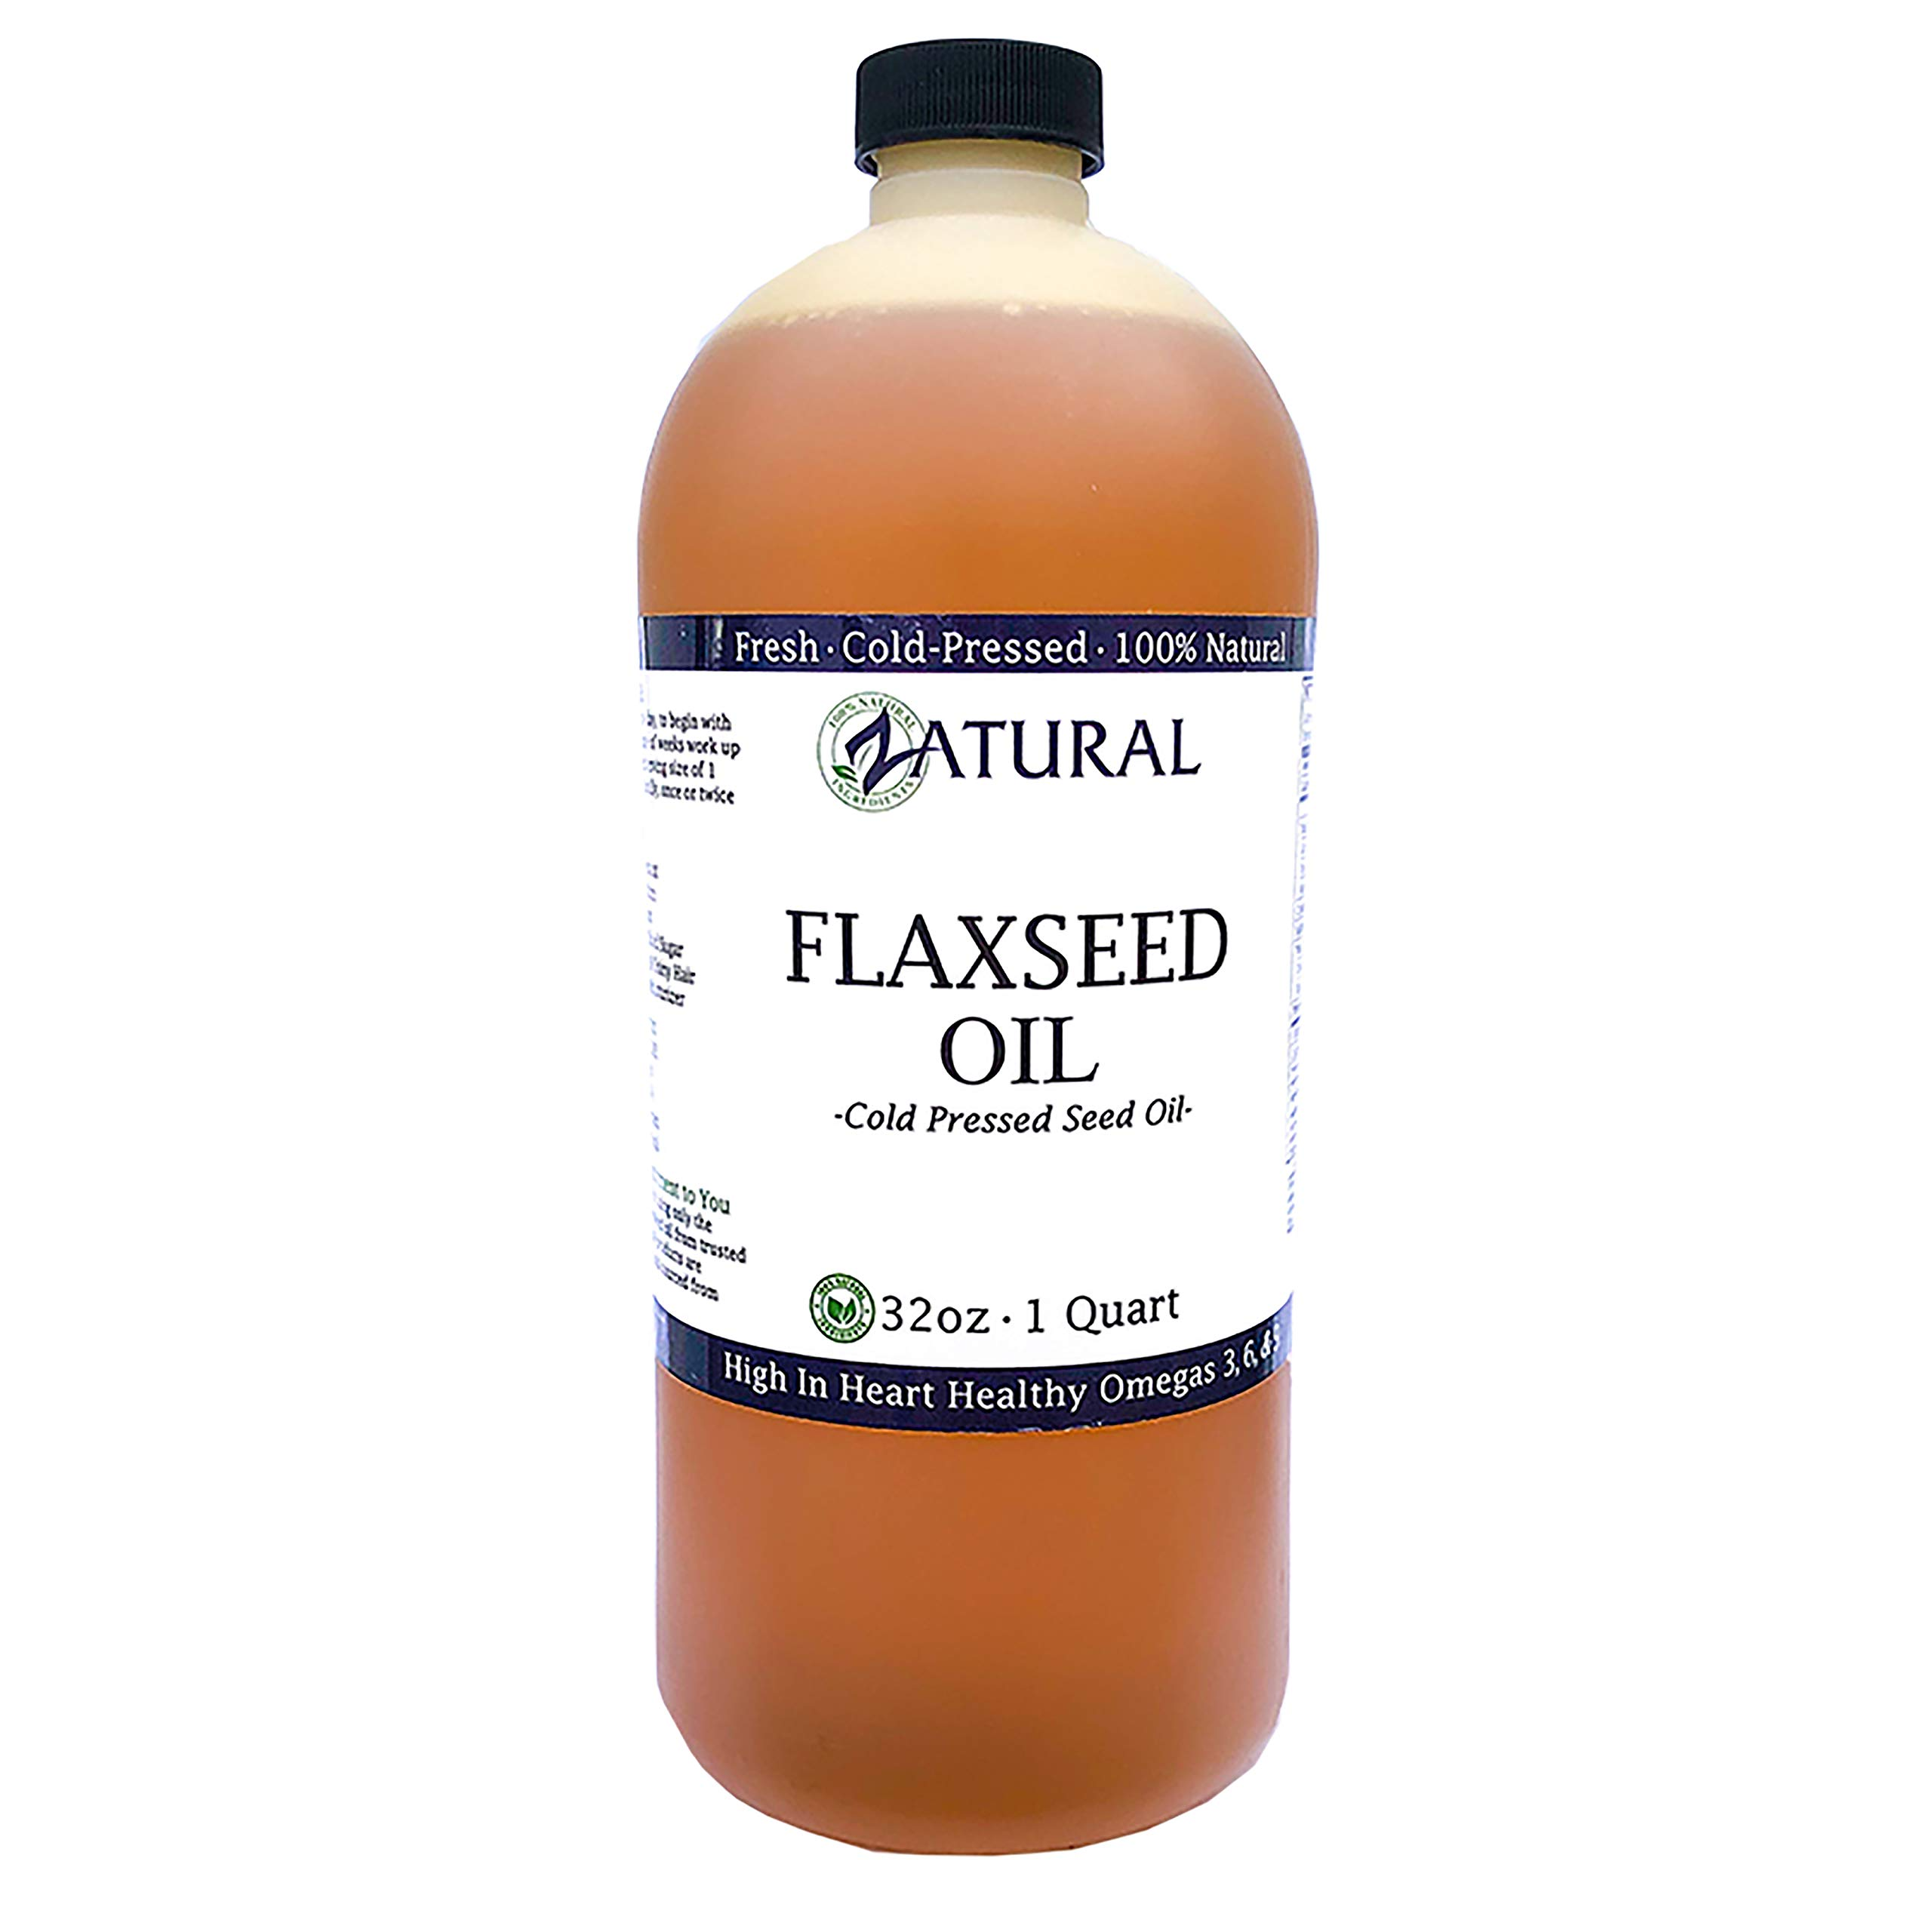 FlaxSeed Oil - 100% Pure Flax Seed Oil - 0 Additives - 0 Fillers - Cold Pressed - Unrefined (32 Ounce) by Zatural